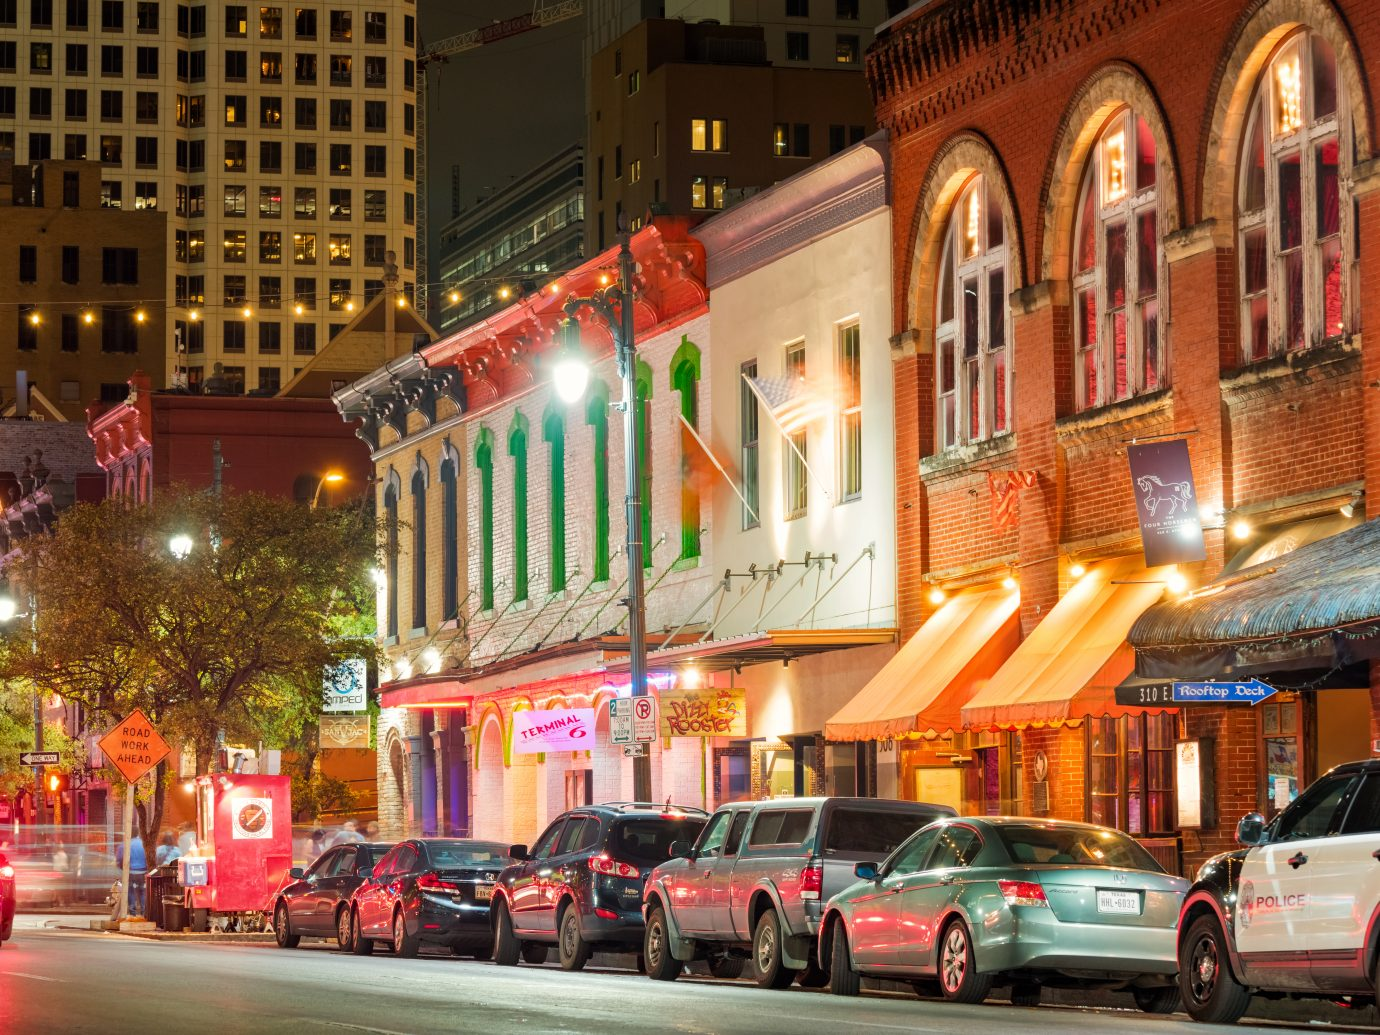 Photo of colorful bars, clubs and businesses at the famous Sixth Street music and entertainment district of downtown Austin, Texas, USA, illuminated at night.